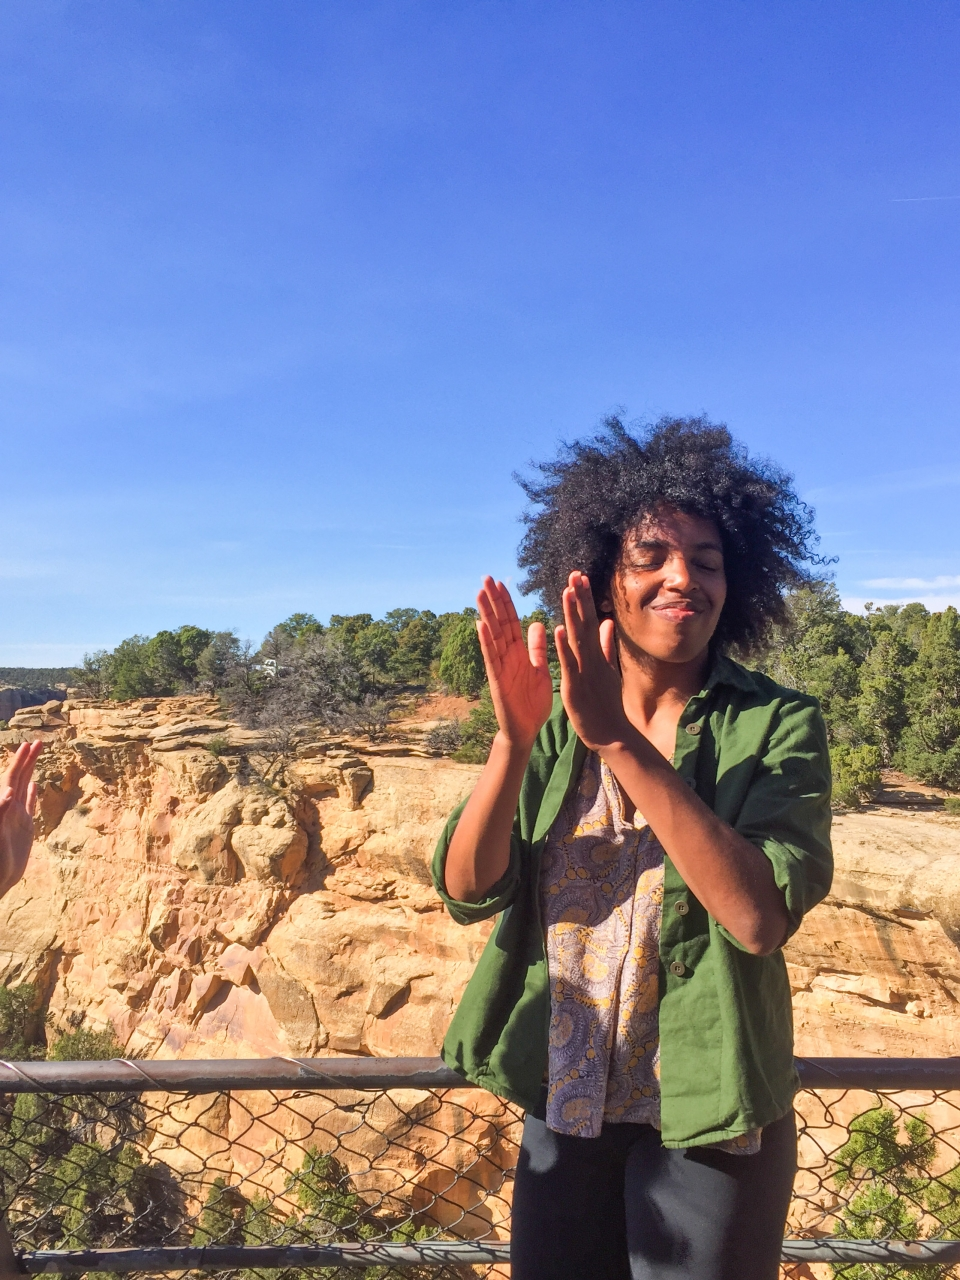 African American woman experiences happiness at Mesa Verde